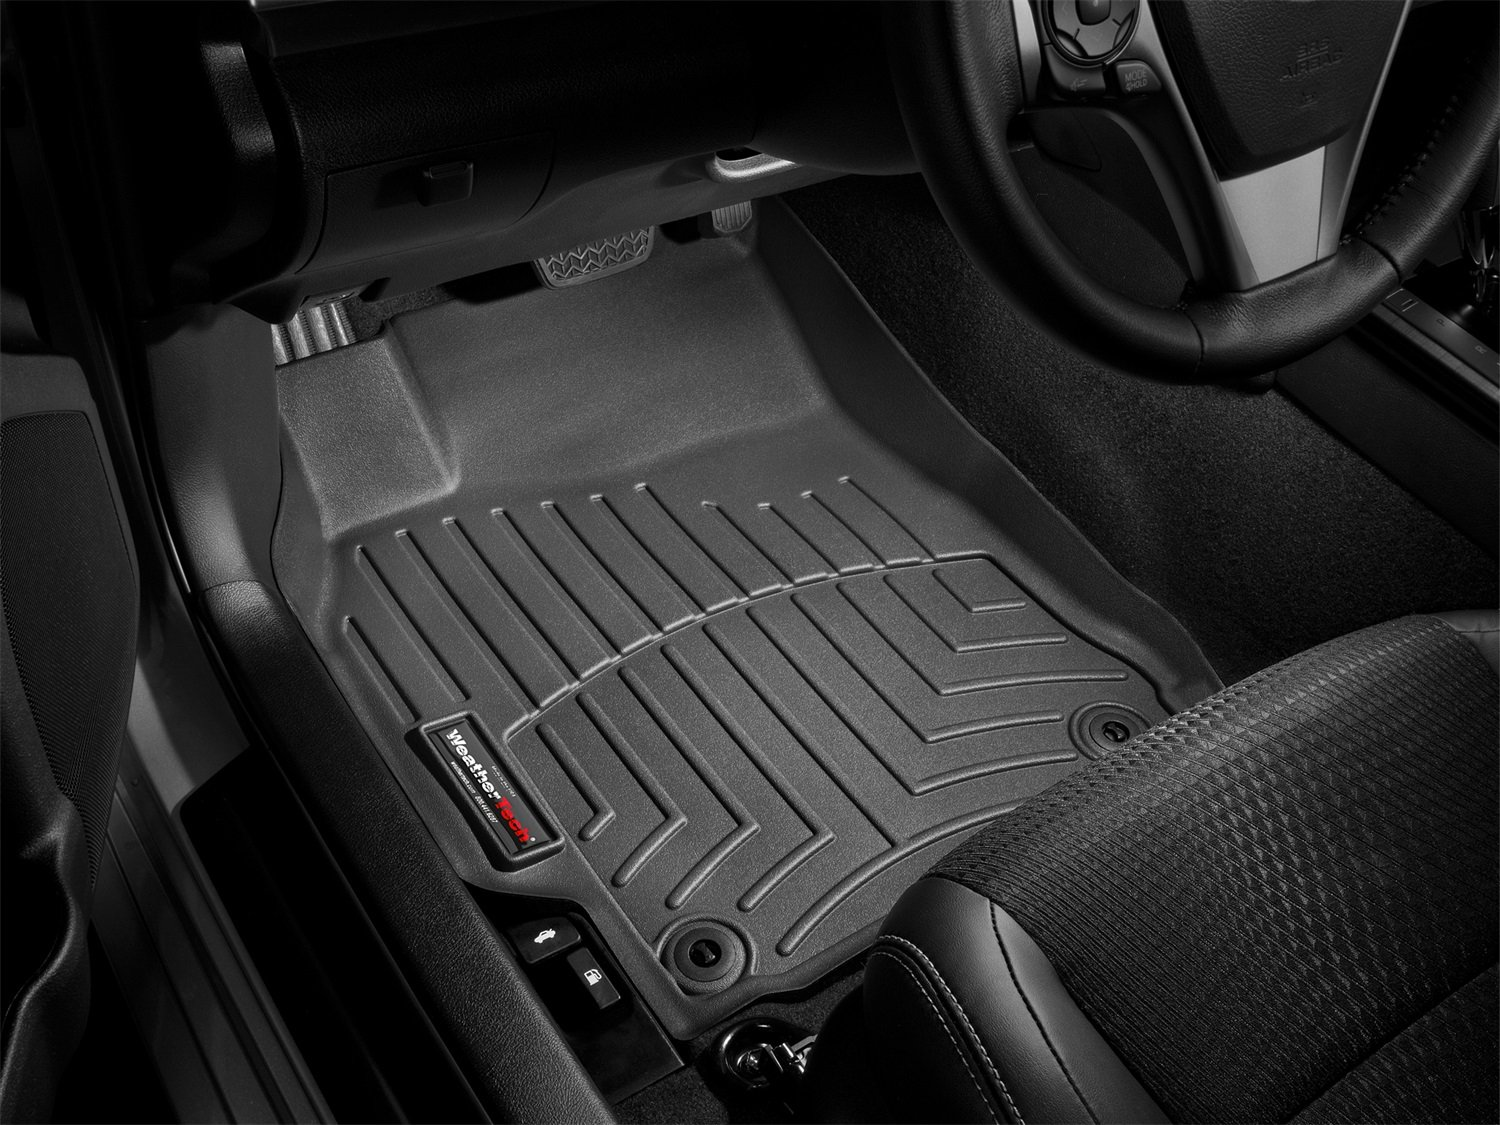 Floor mats dream cars - Amazon Com Weathertech Custom Fit Front Floorliner For Select Dodge Ram Models Black Automotive